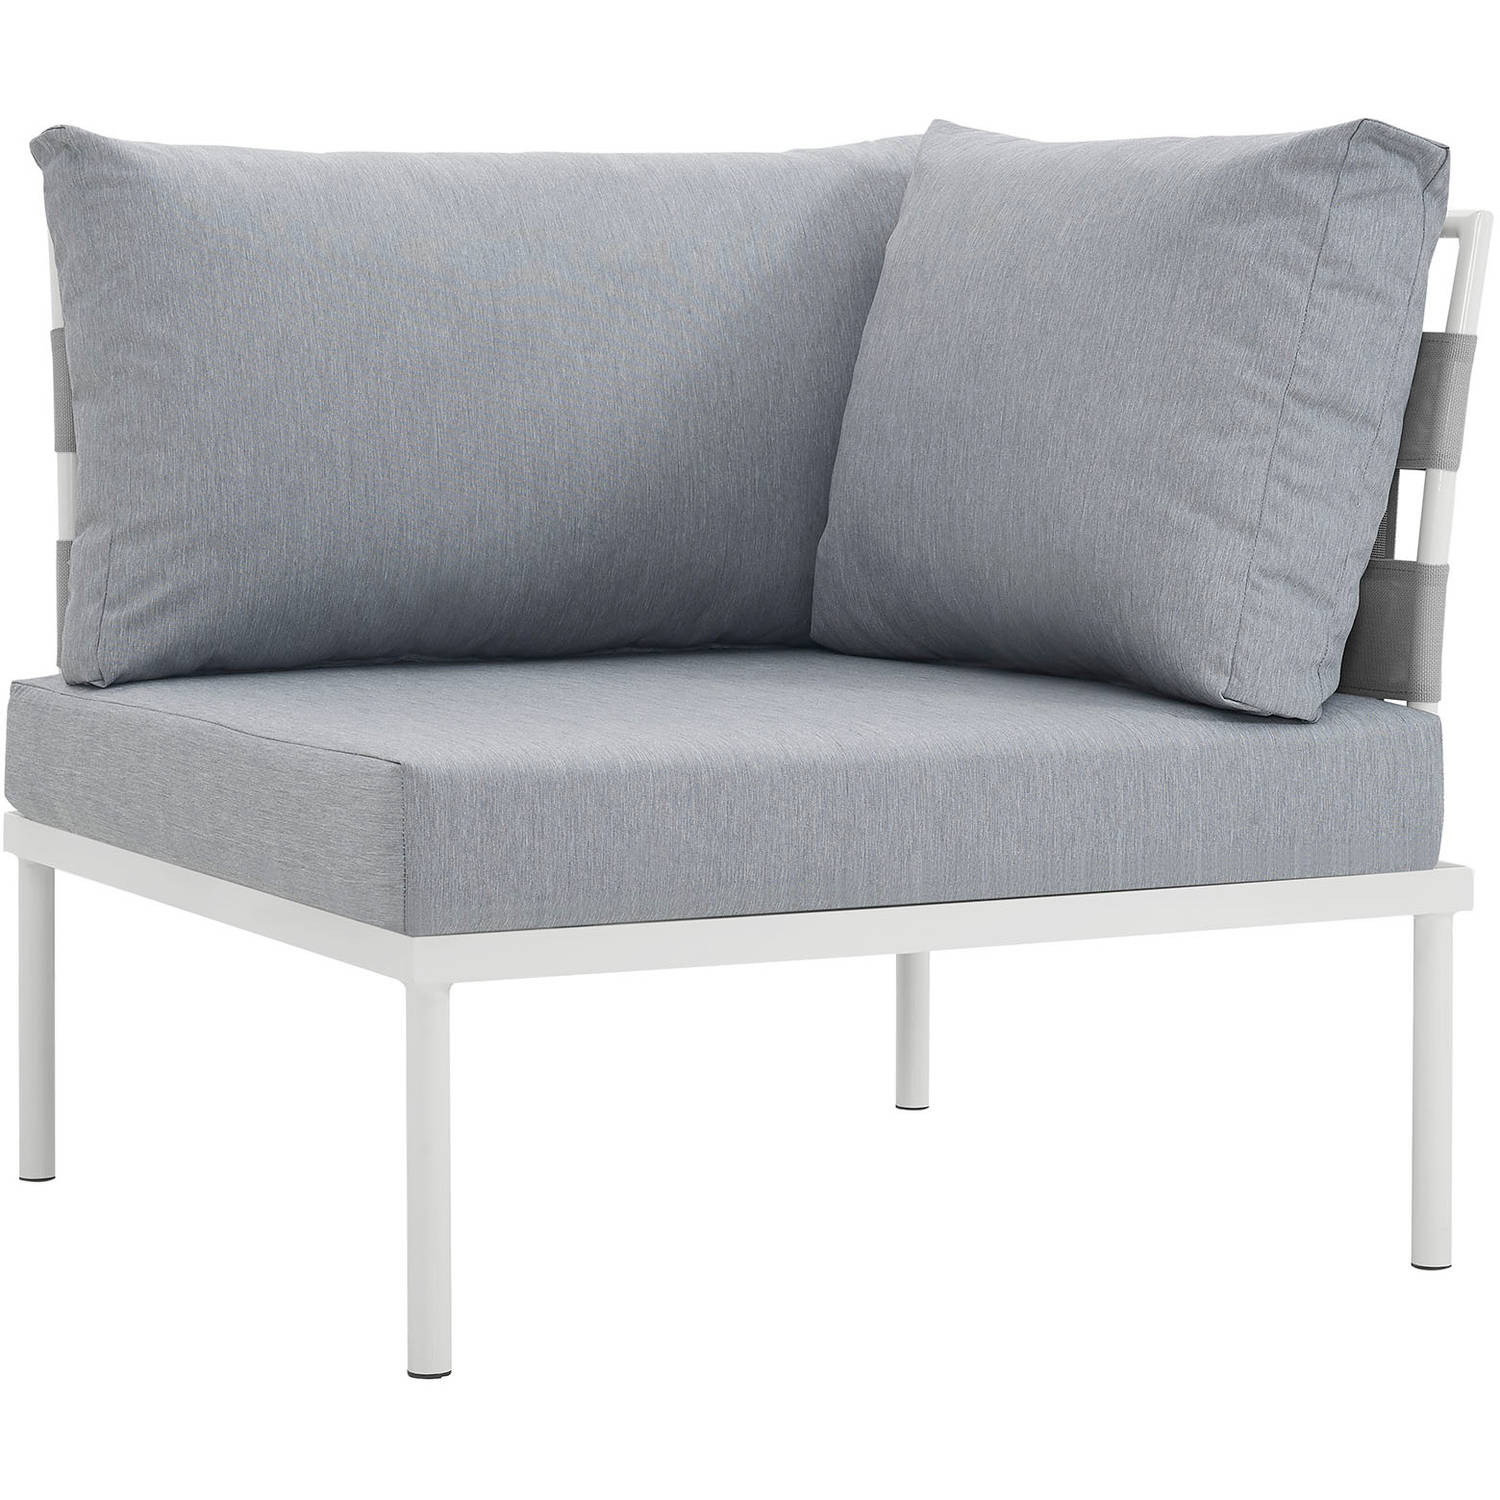 Modway Harmony Outdoor Patio Aluminum Corner Sofa, Multiple Colors